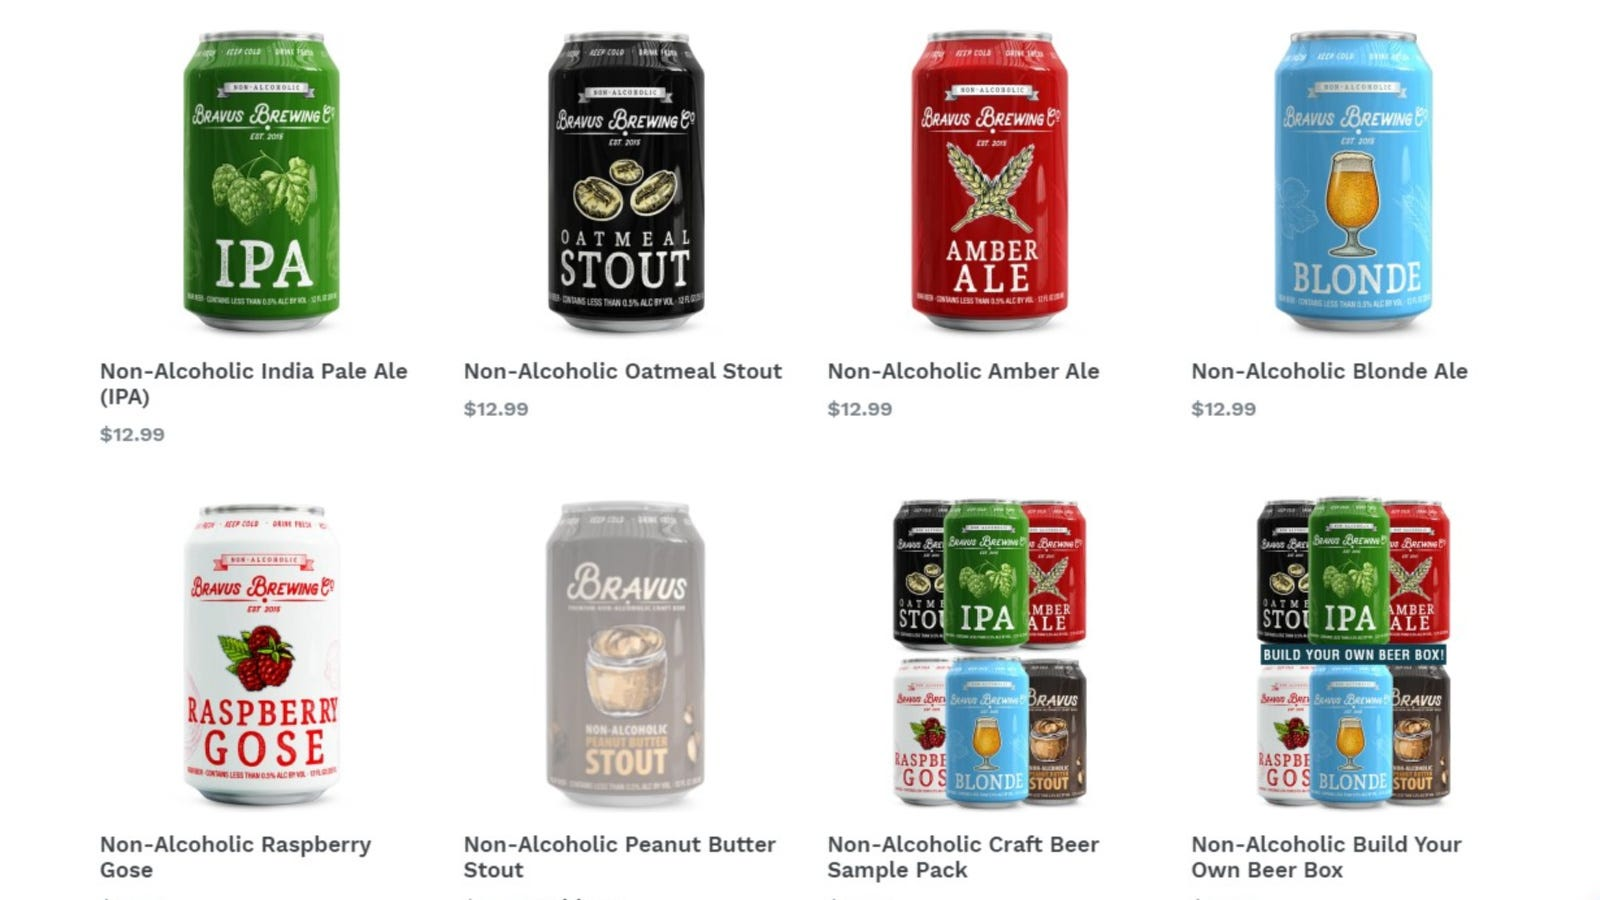 Multiple Bravus non-alcoholic beer selections to purchase from including their IPA, oatmeal stout, amber ale, blonde ale and more.